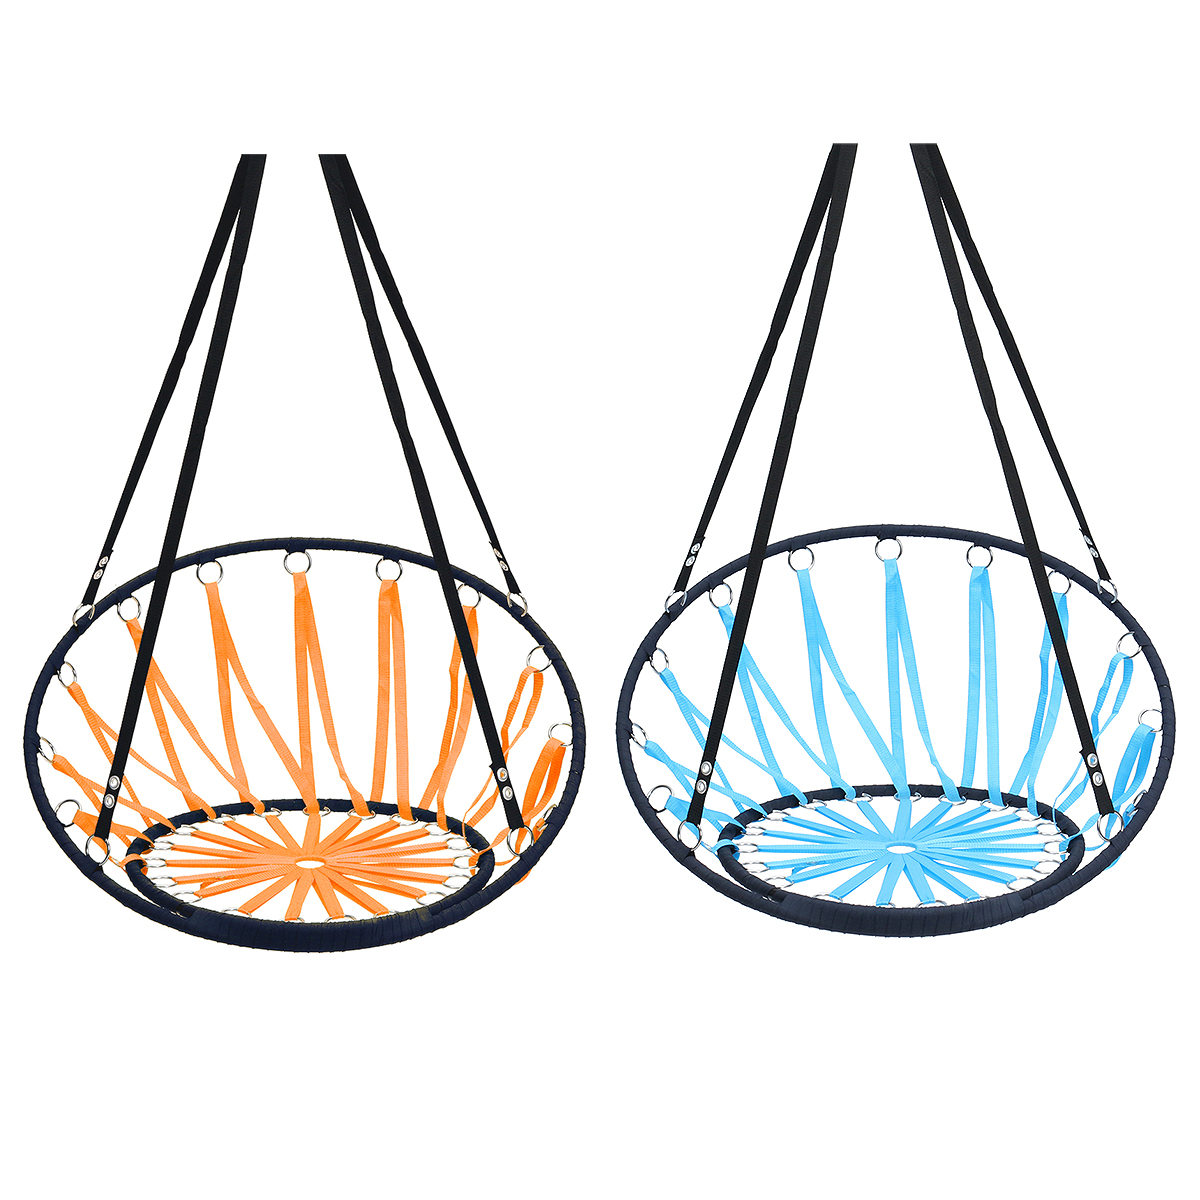 Handmade Knitted Round Hammock Outdoor Indoor Dormitory